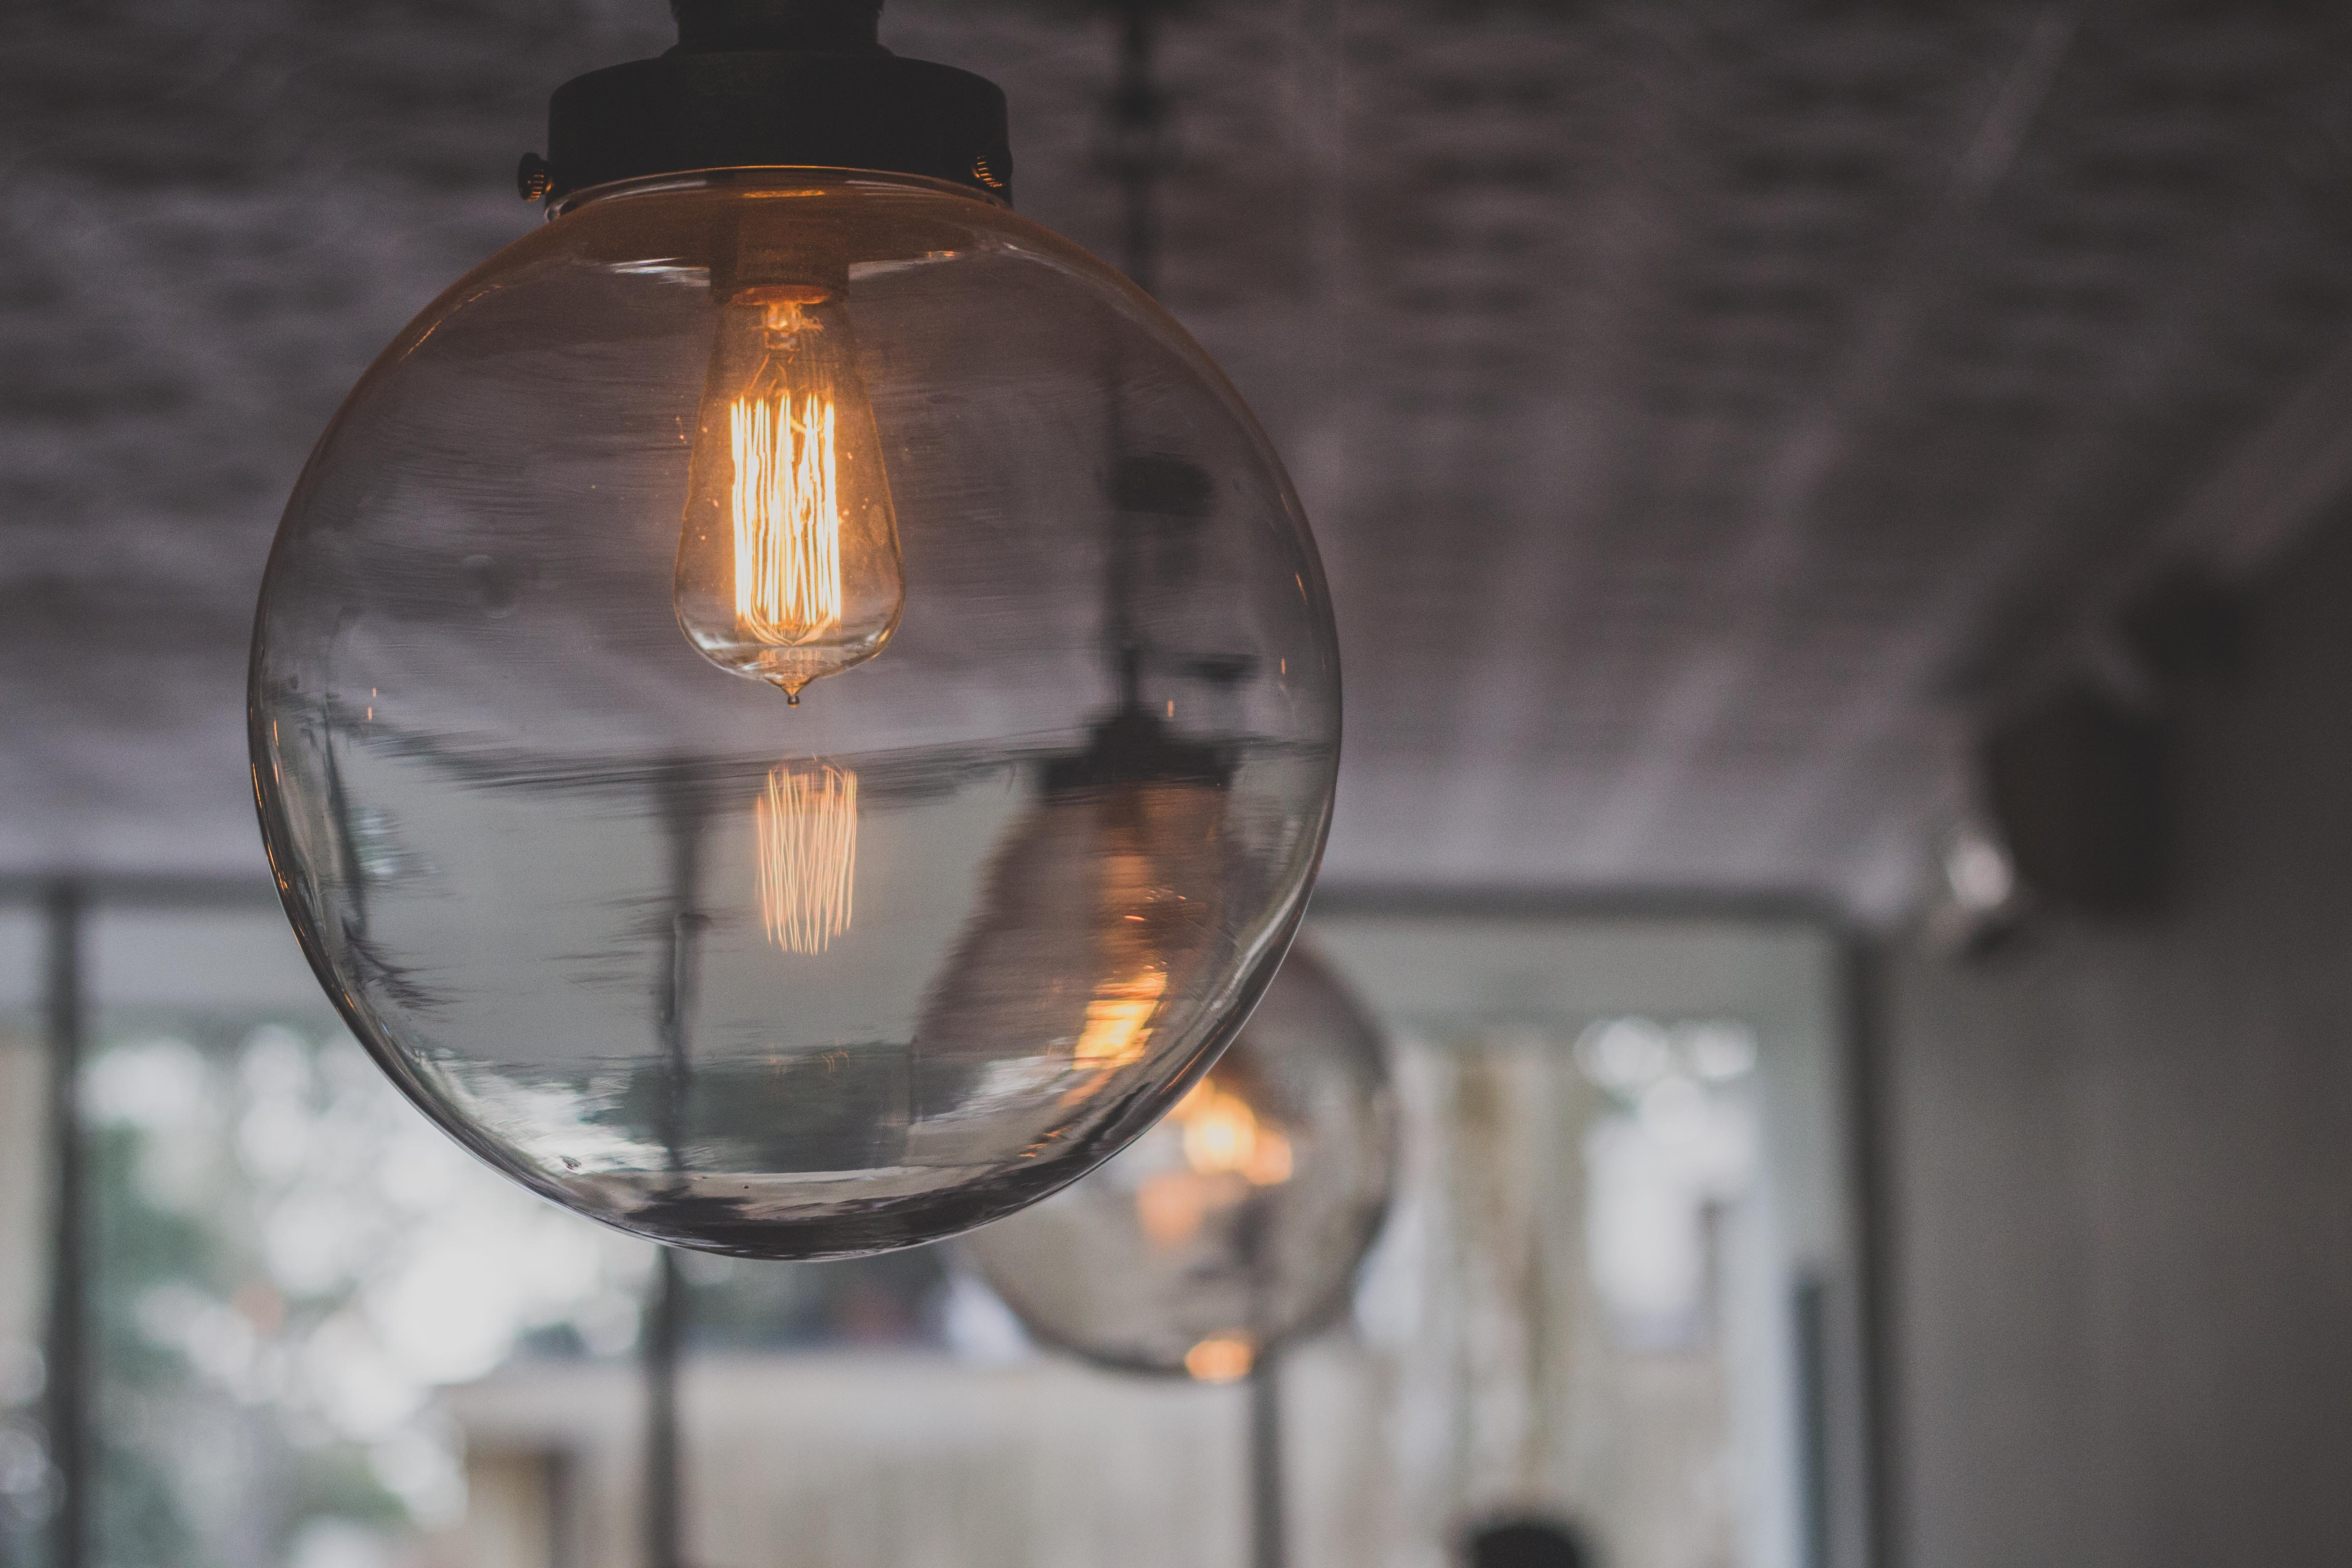 How Do I Know What Base My Light Bulb Is?